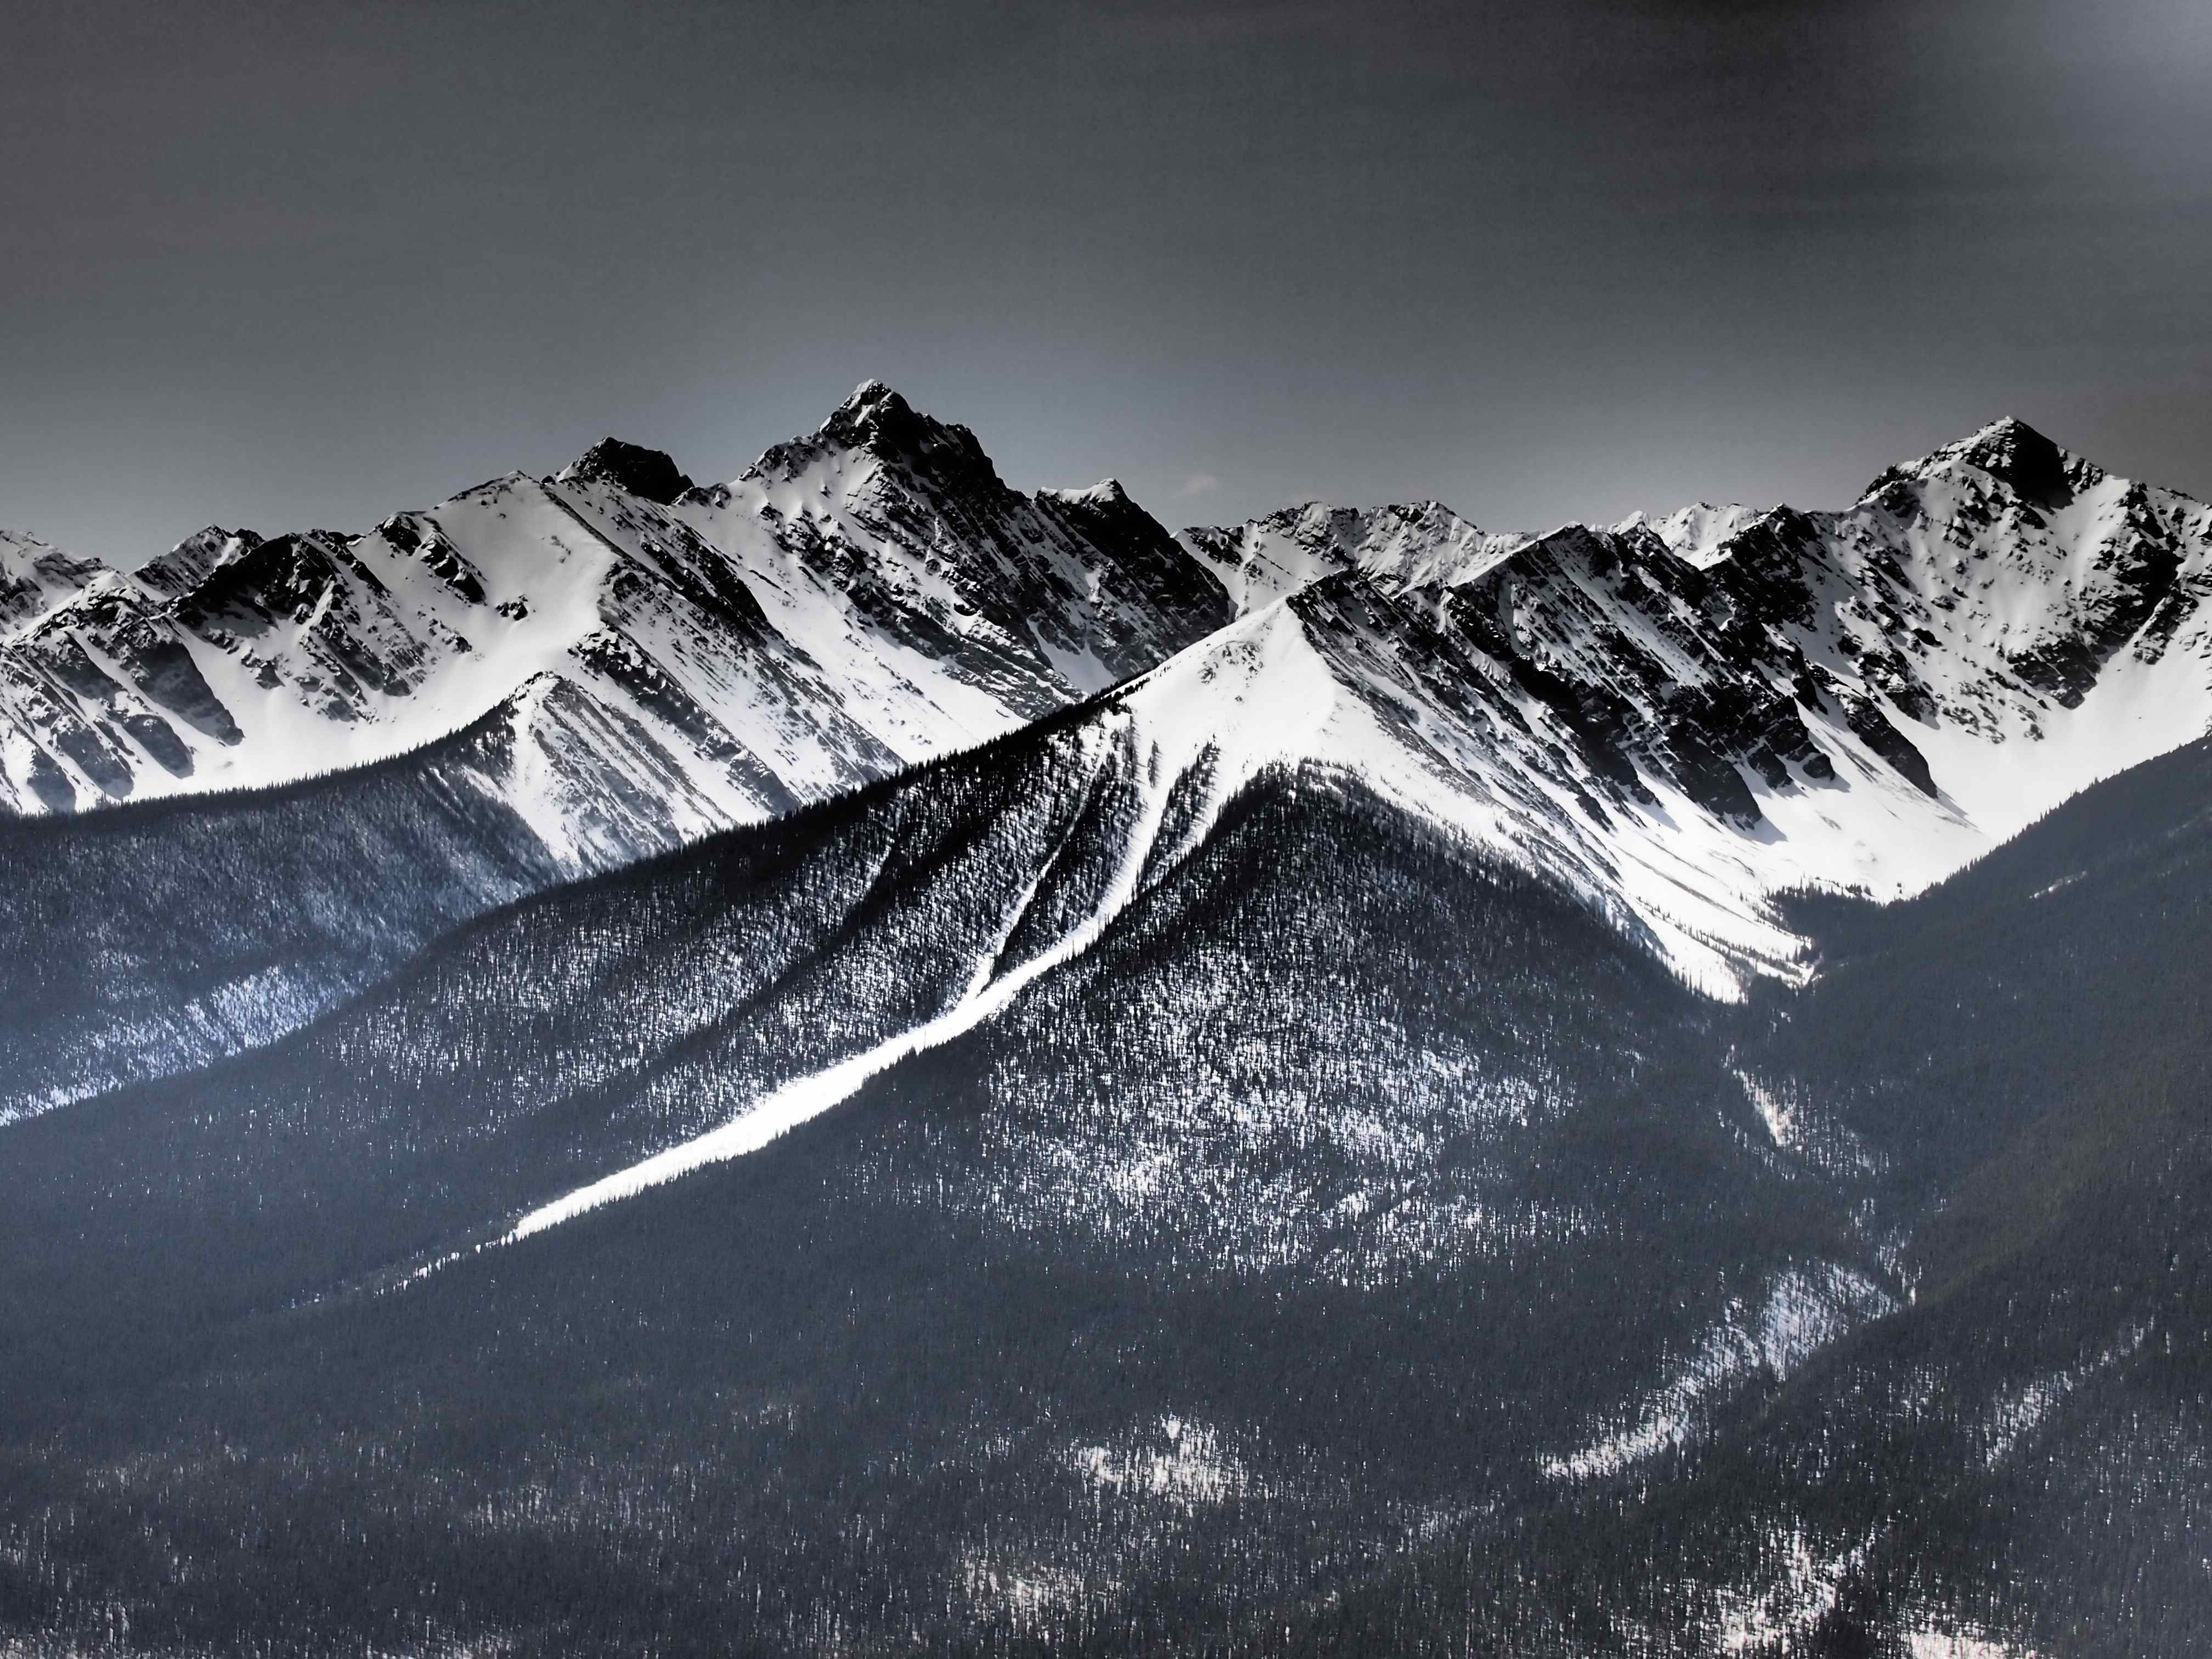 Sulphur Mountain Dramatic 3